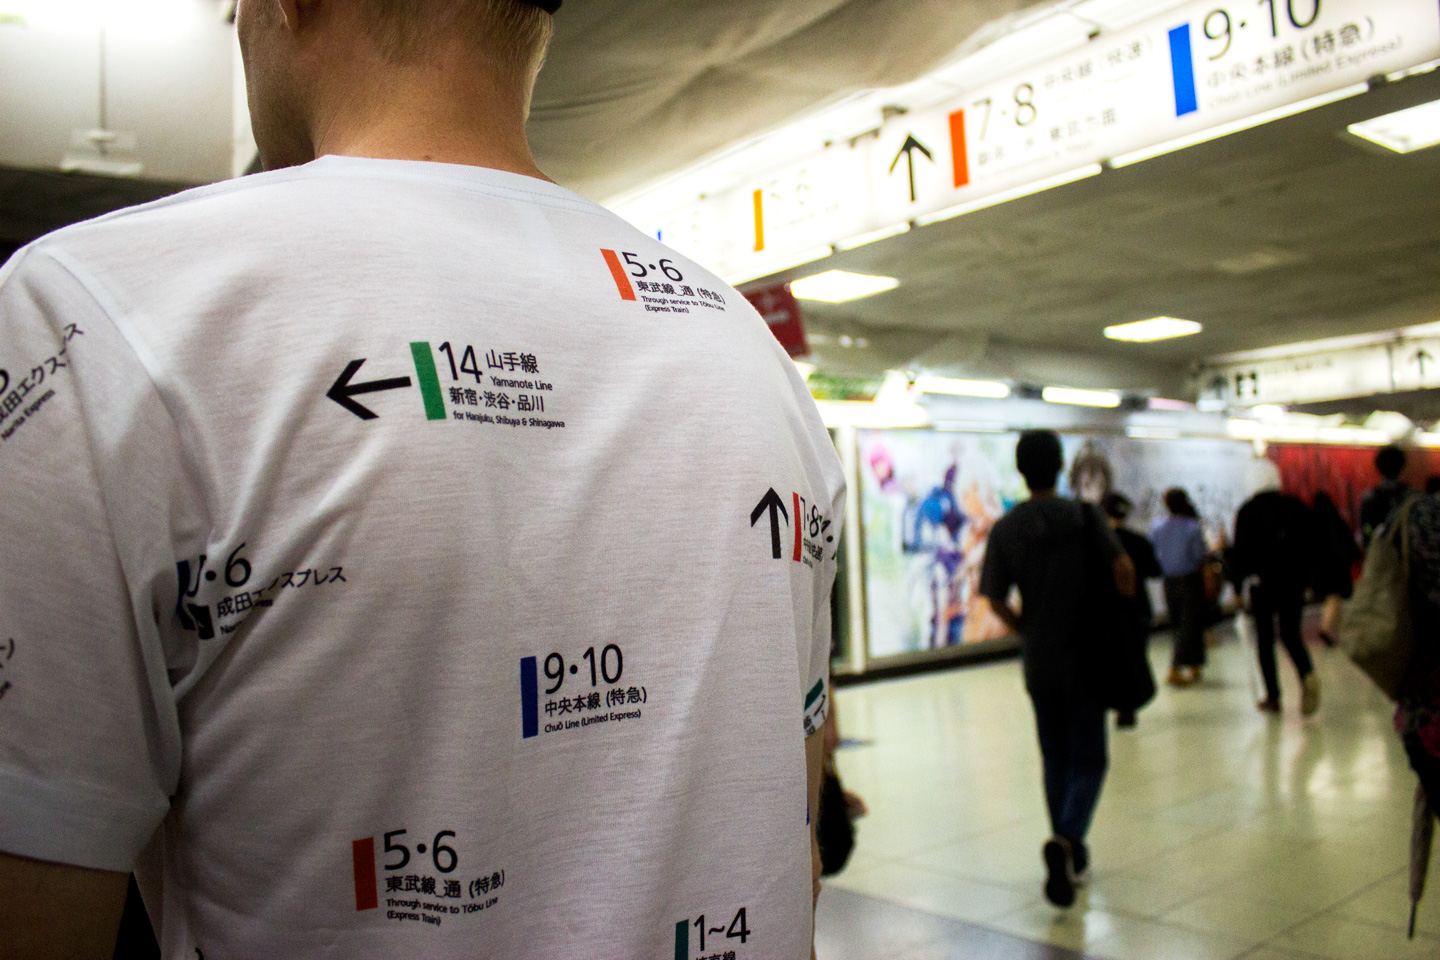 Tokyo Signs - Products inspired by the streets of Tokyo - Shinujuku Station Signage T-shirt